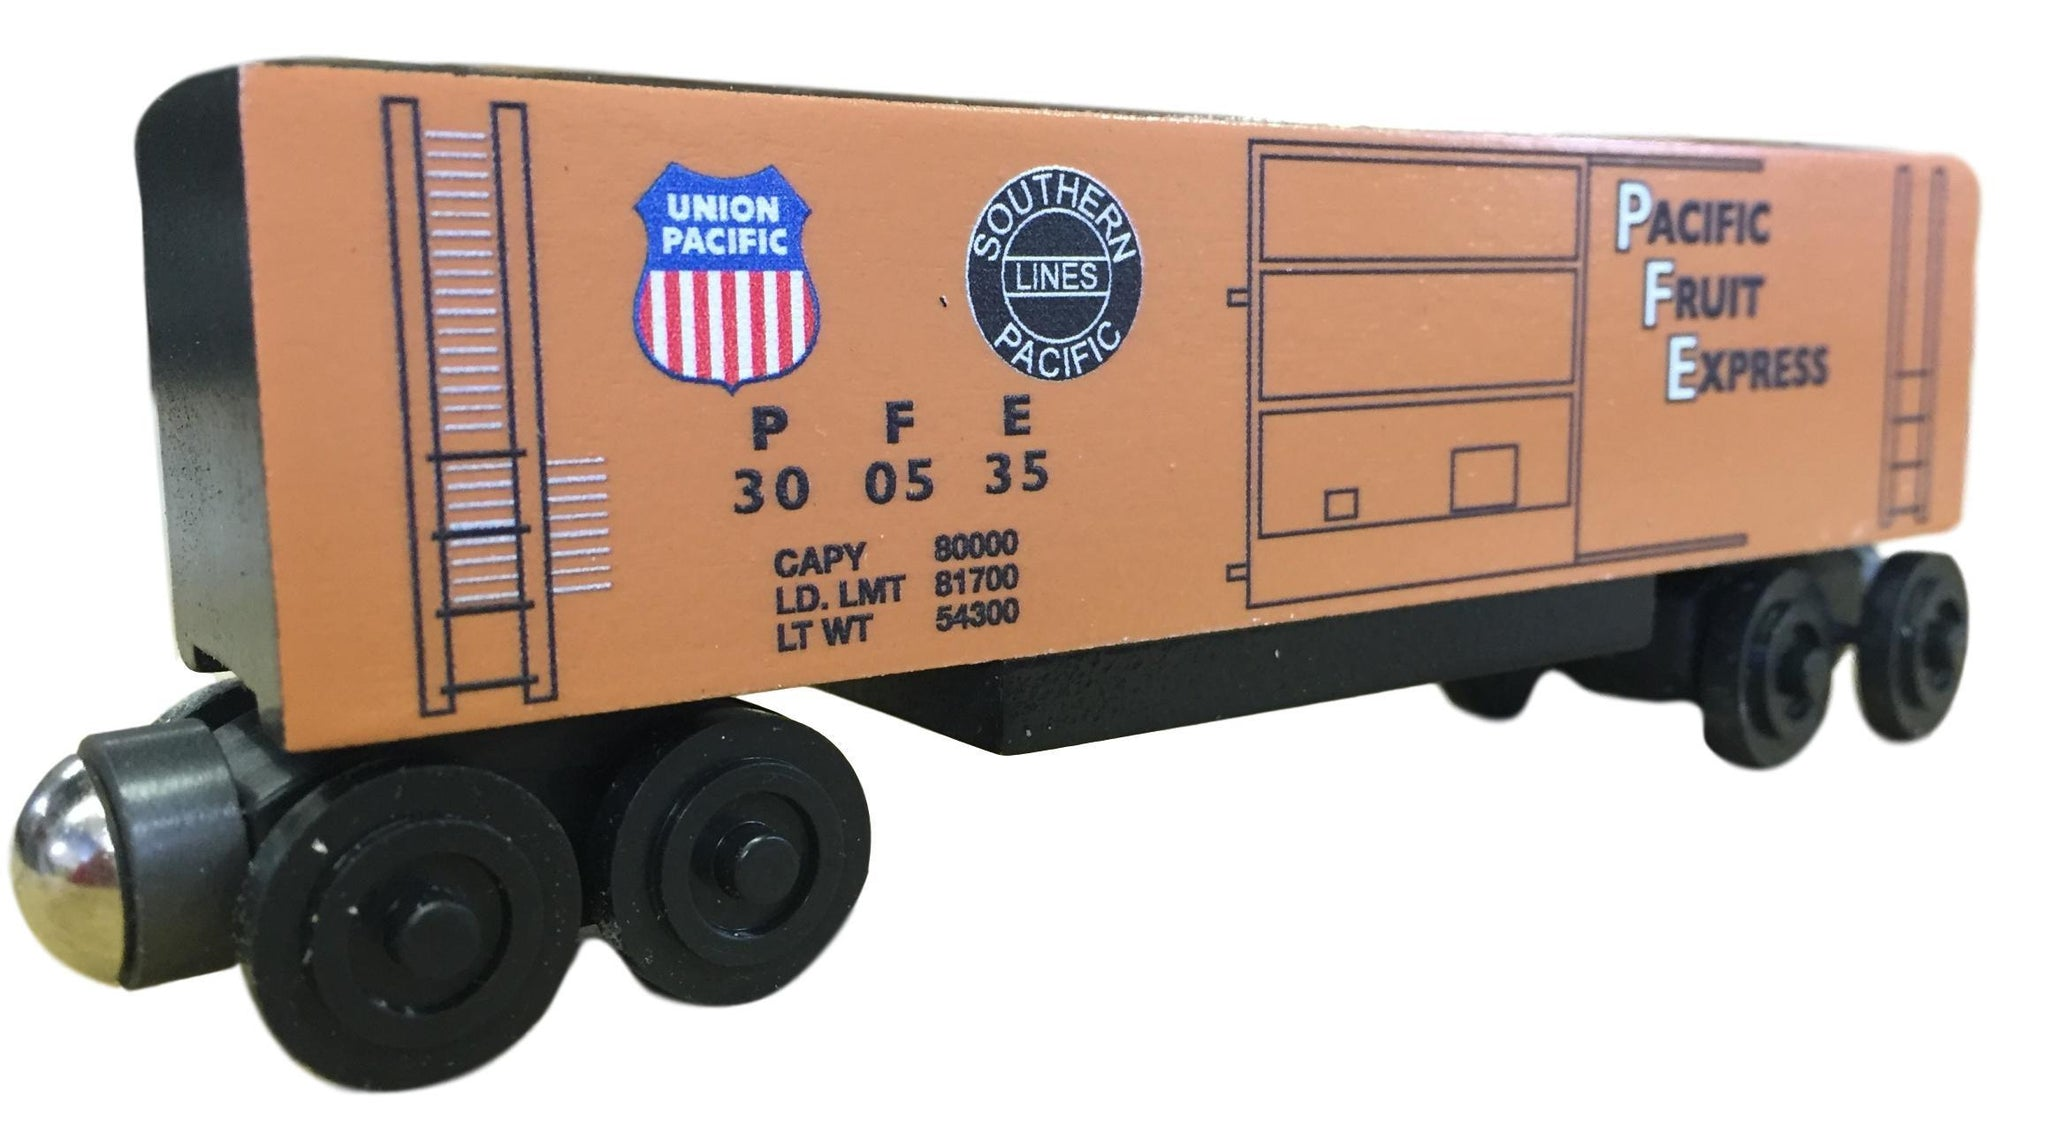 Pacific Fruit Express Hi-Cube Boxcar